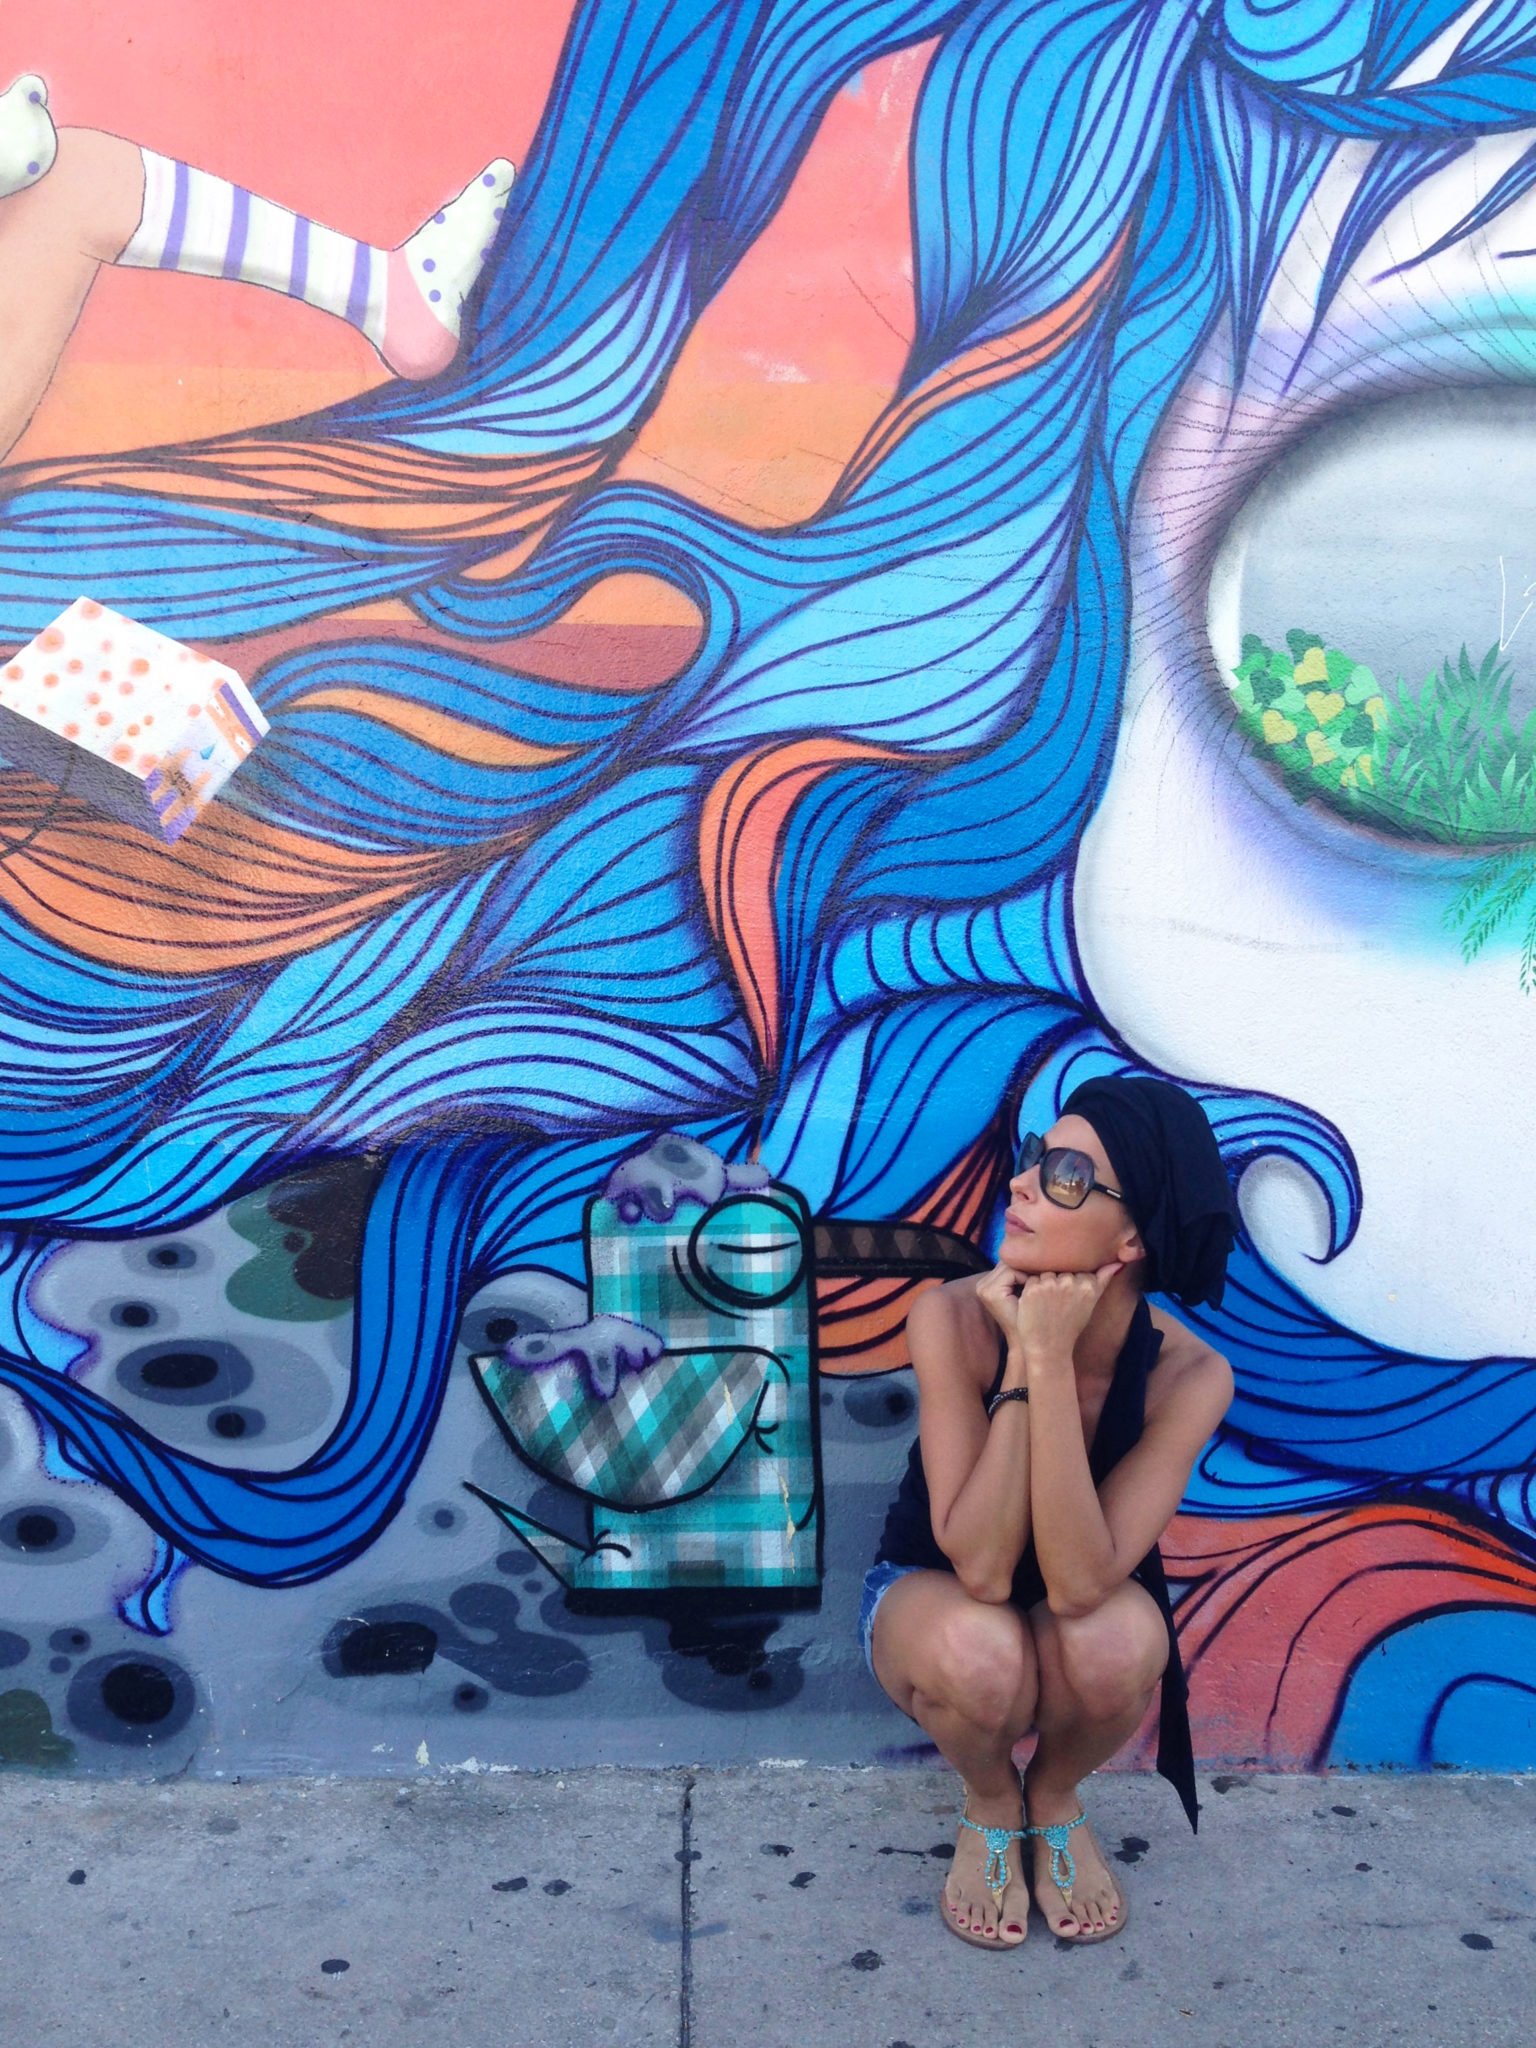 "#SELFIEADARTE ""Squatting by the former squat"" @OsGemeos #WynwoodArtDistrict #Miami"